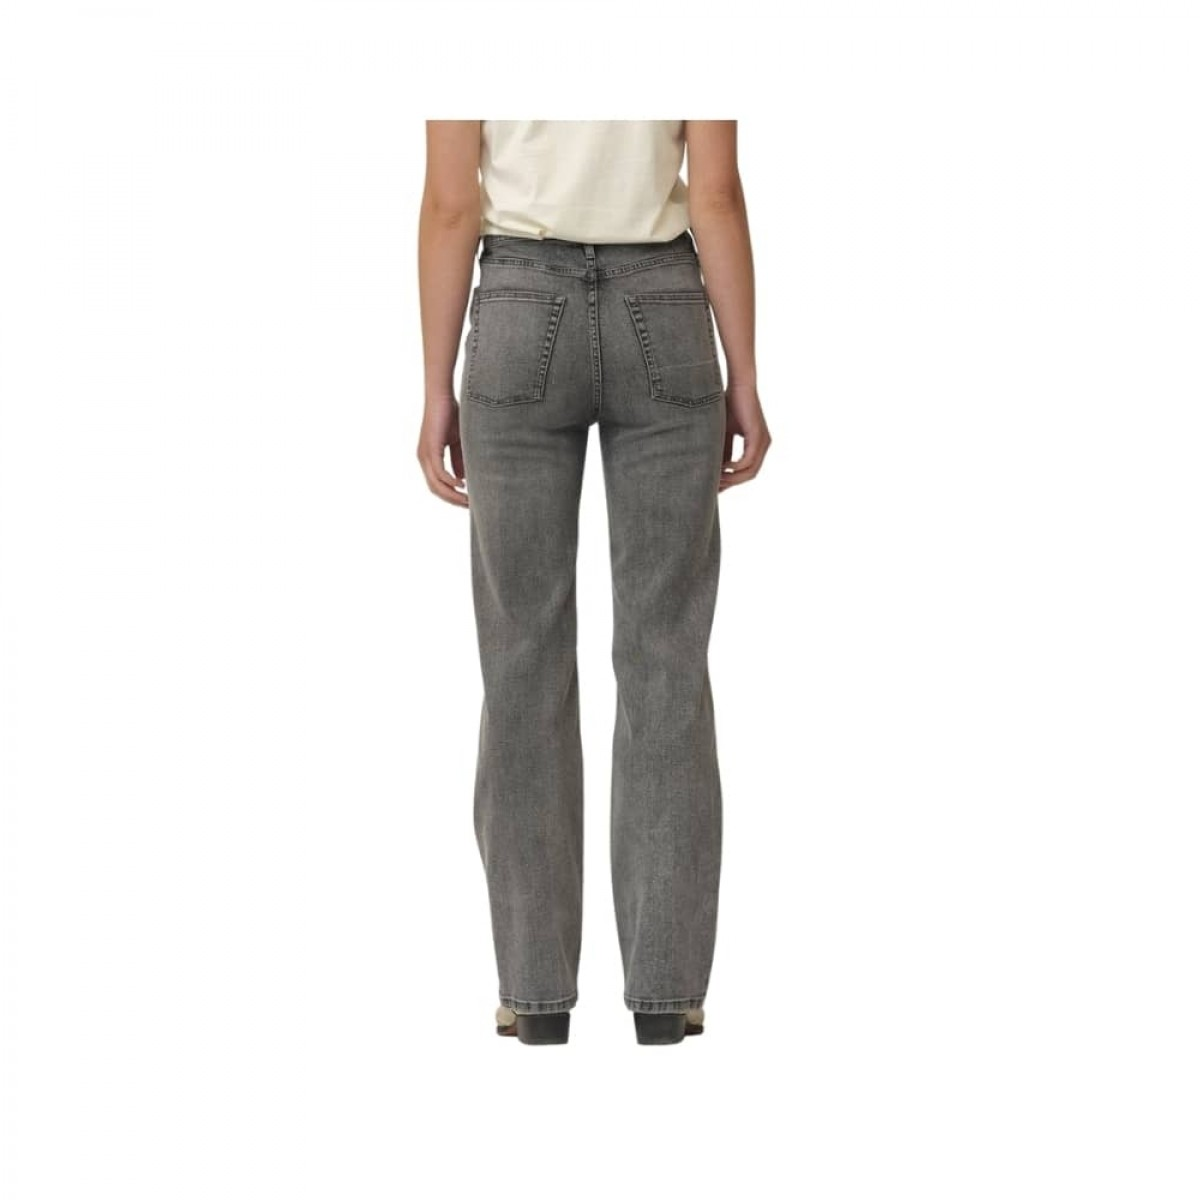 bowie hw cropped jeans - grey - model bagfra